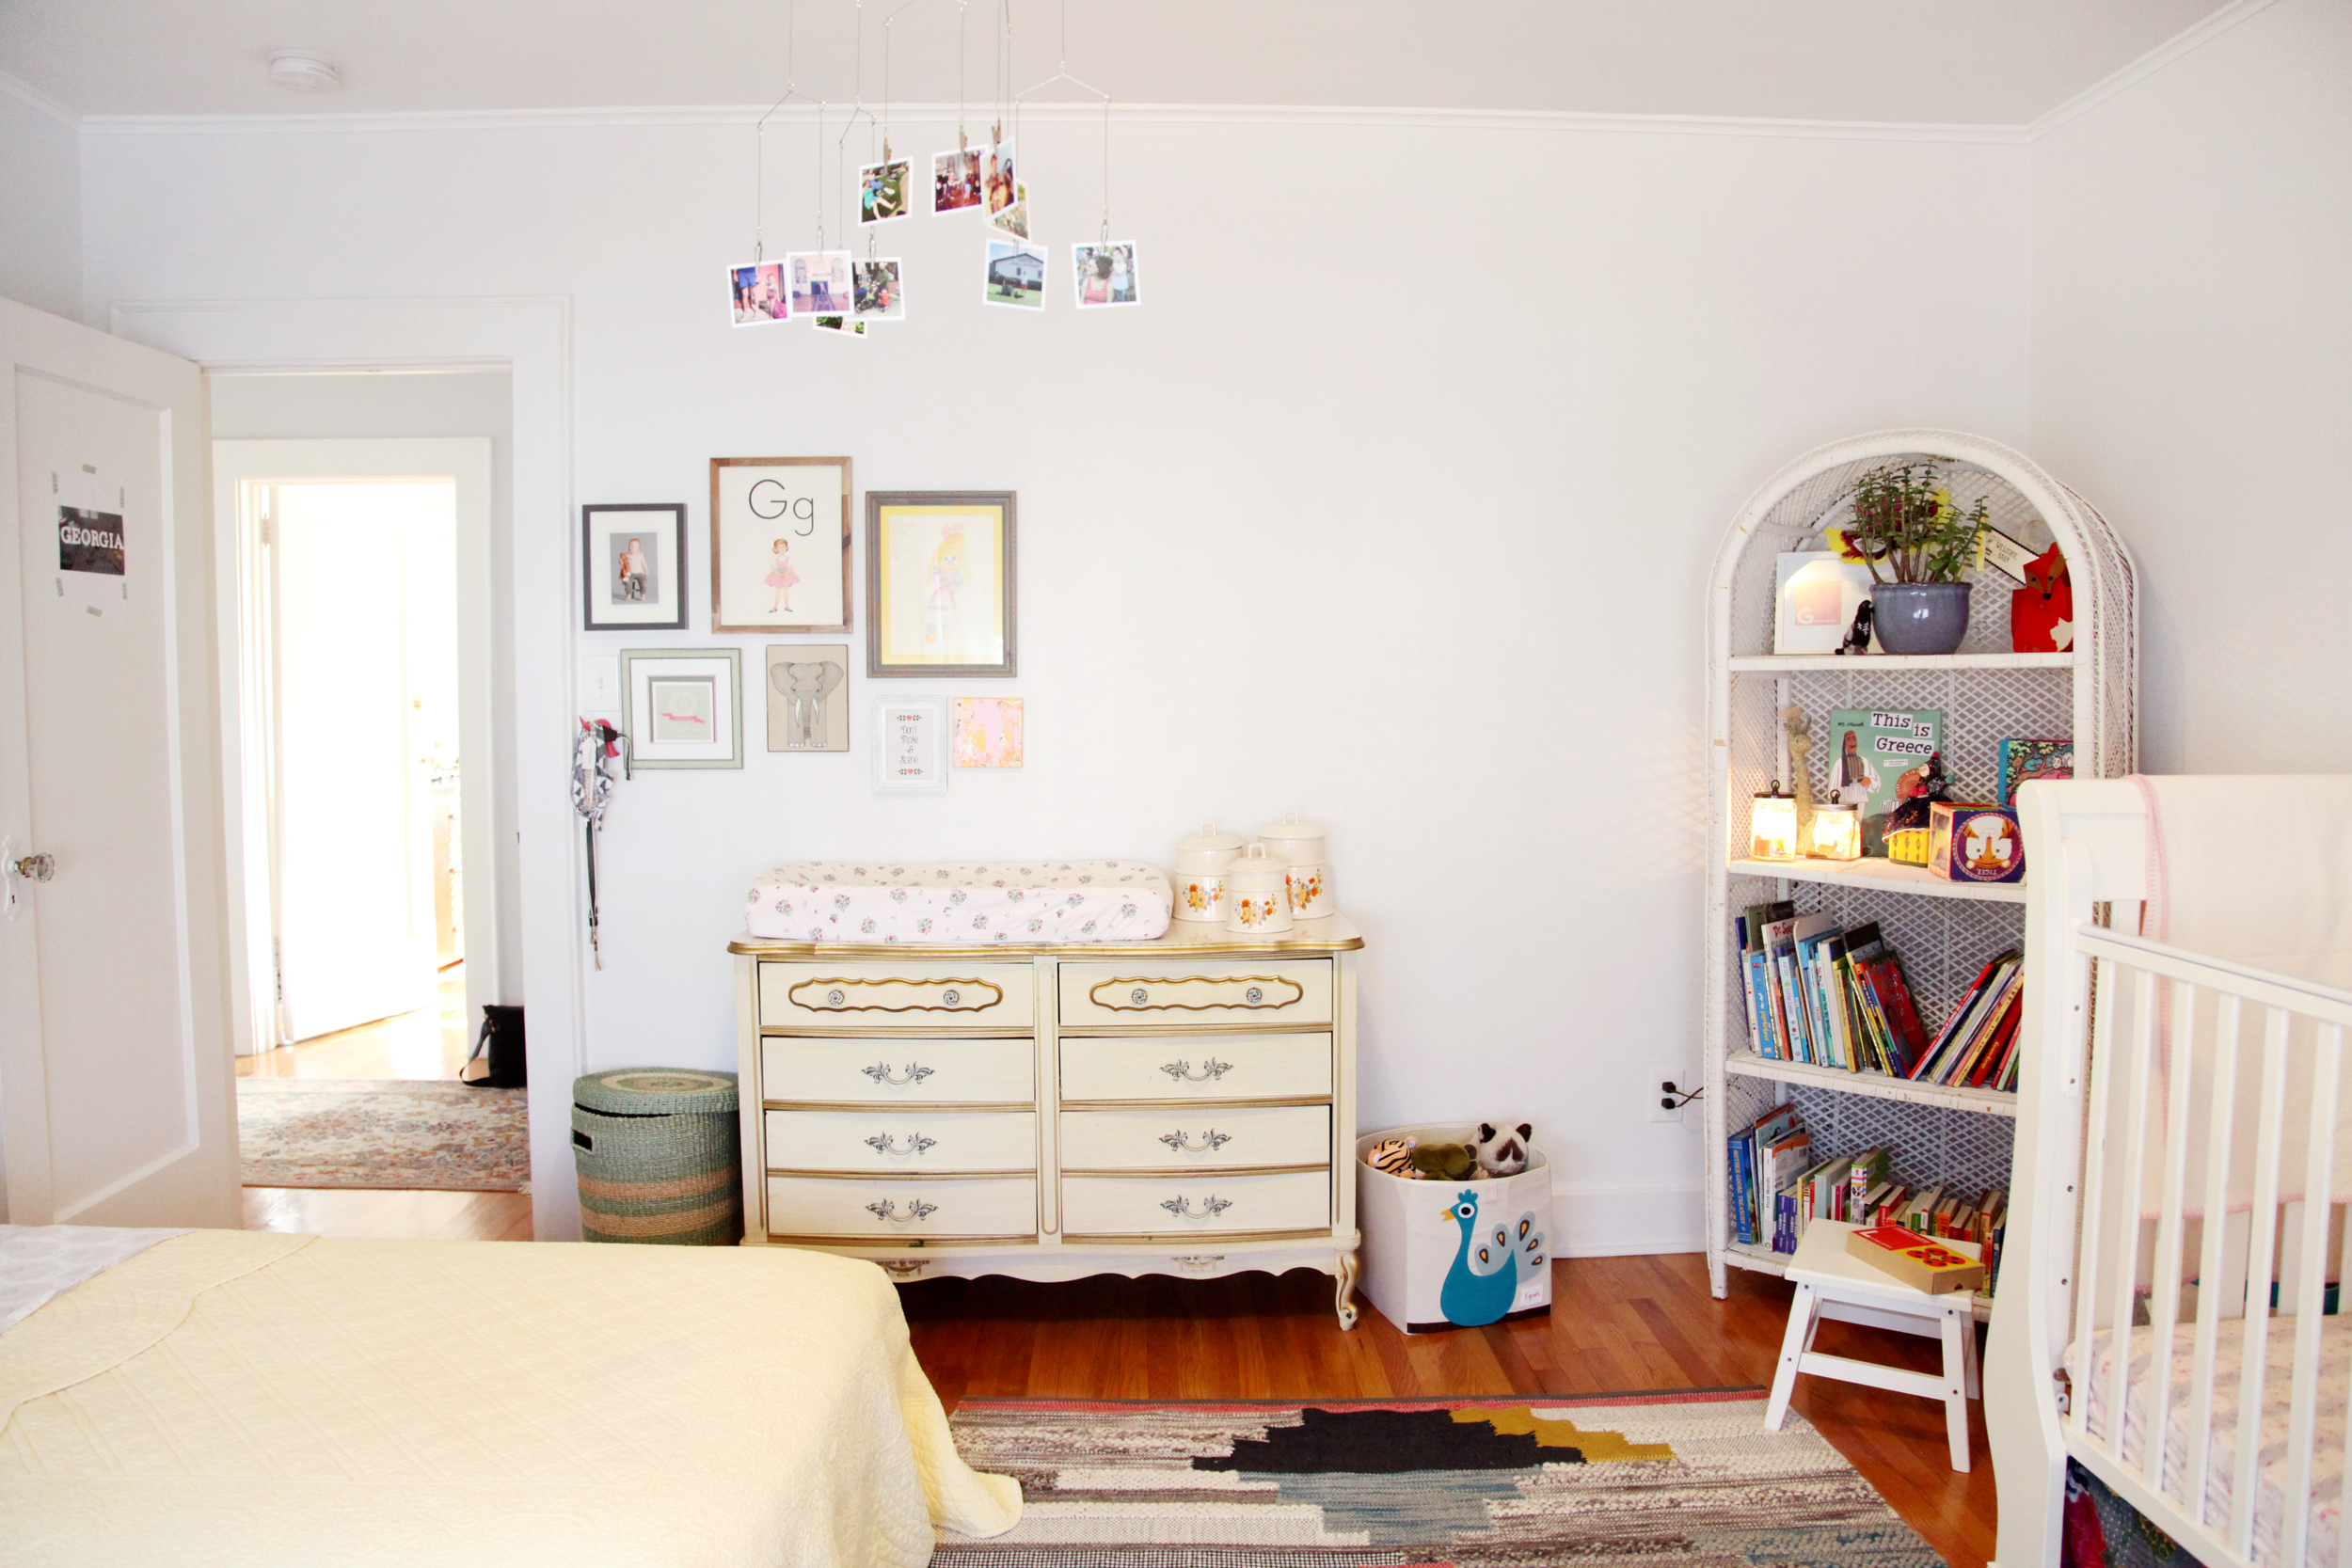 The shared room packs whimsy from wall to wall. Dressers from Dana's childhood.